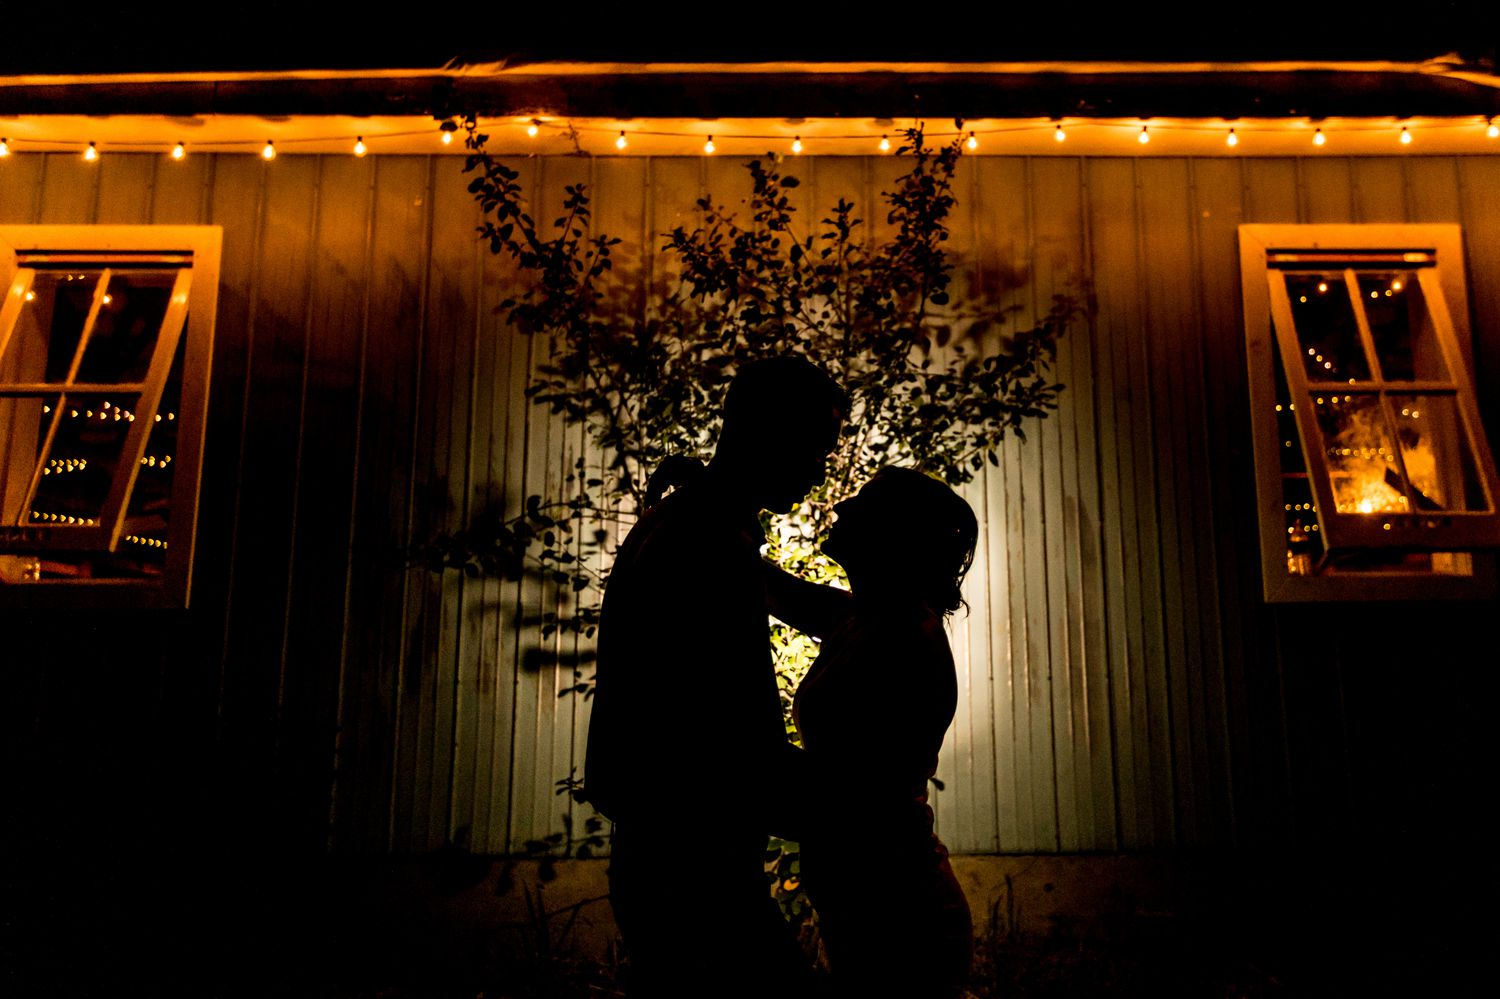 A portrait of the bride and groom at night in front of their newly renovated rustic barn